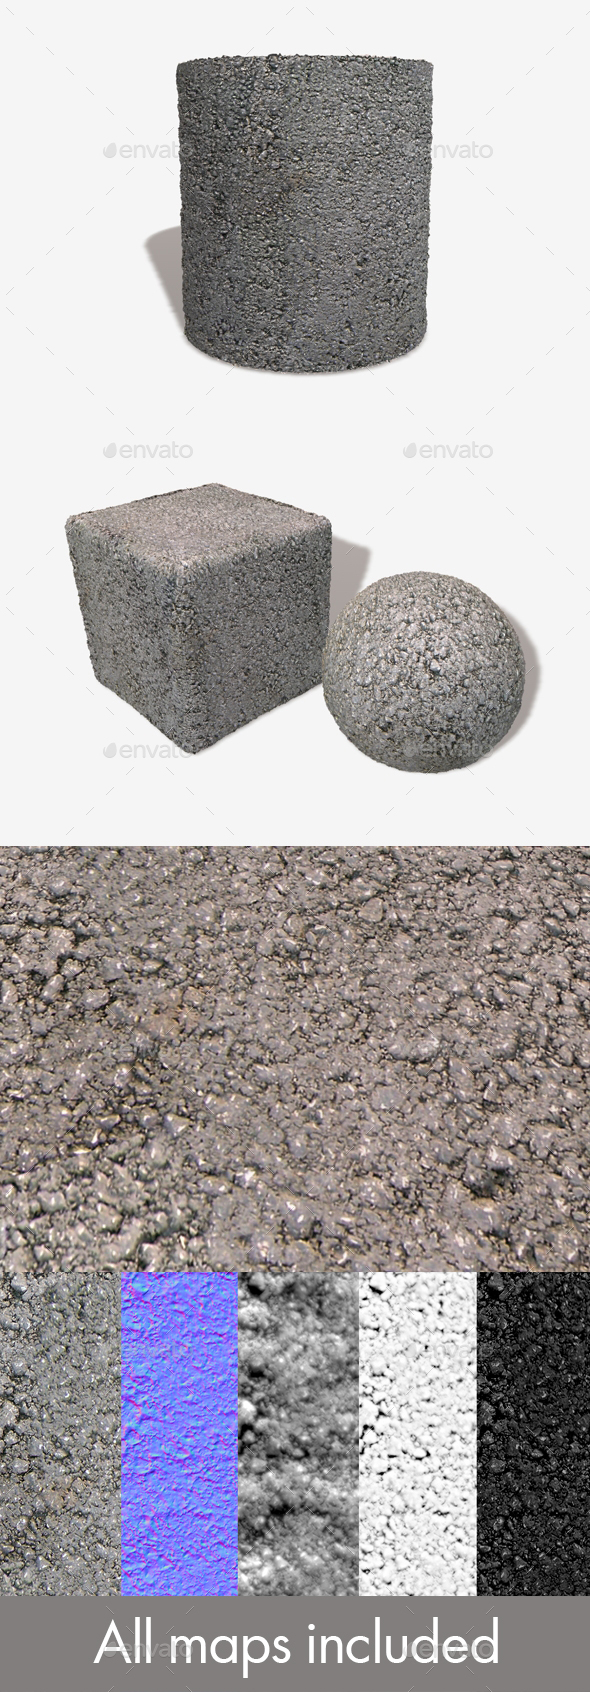 Cement Seamless Texture - 3DOcean Item for Sale